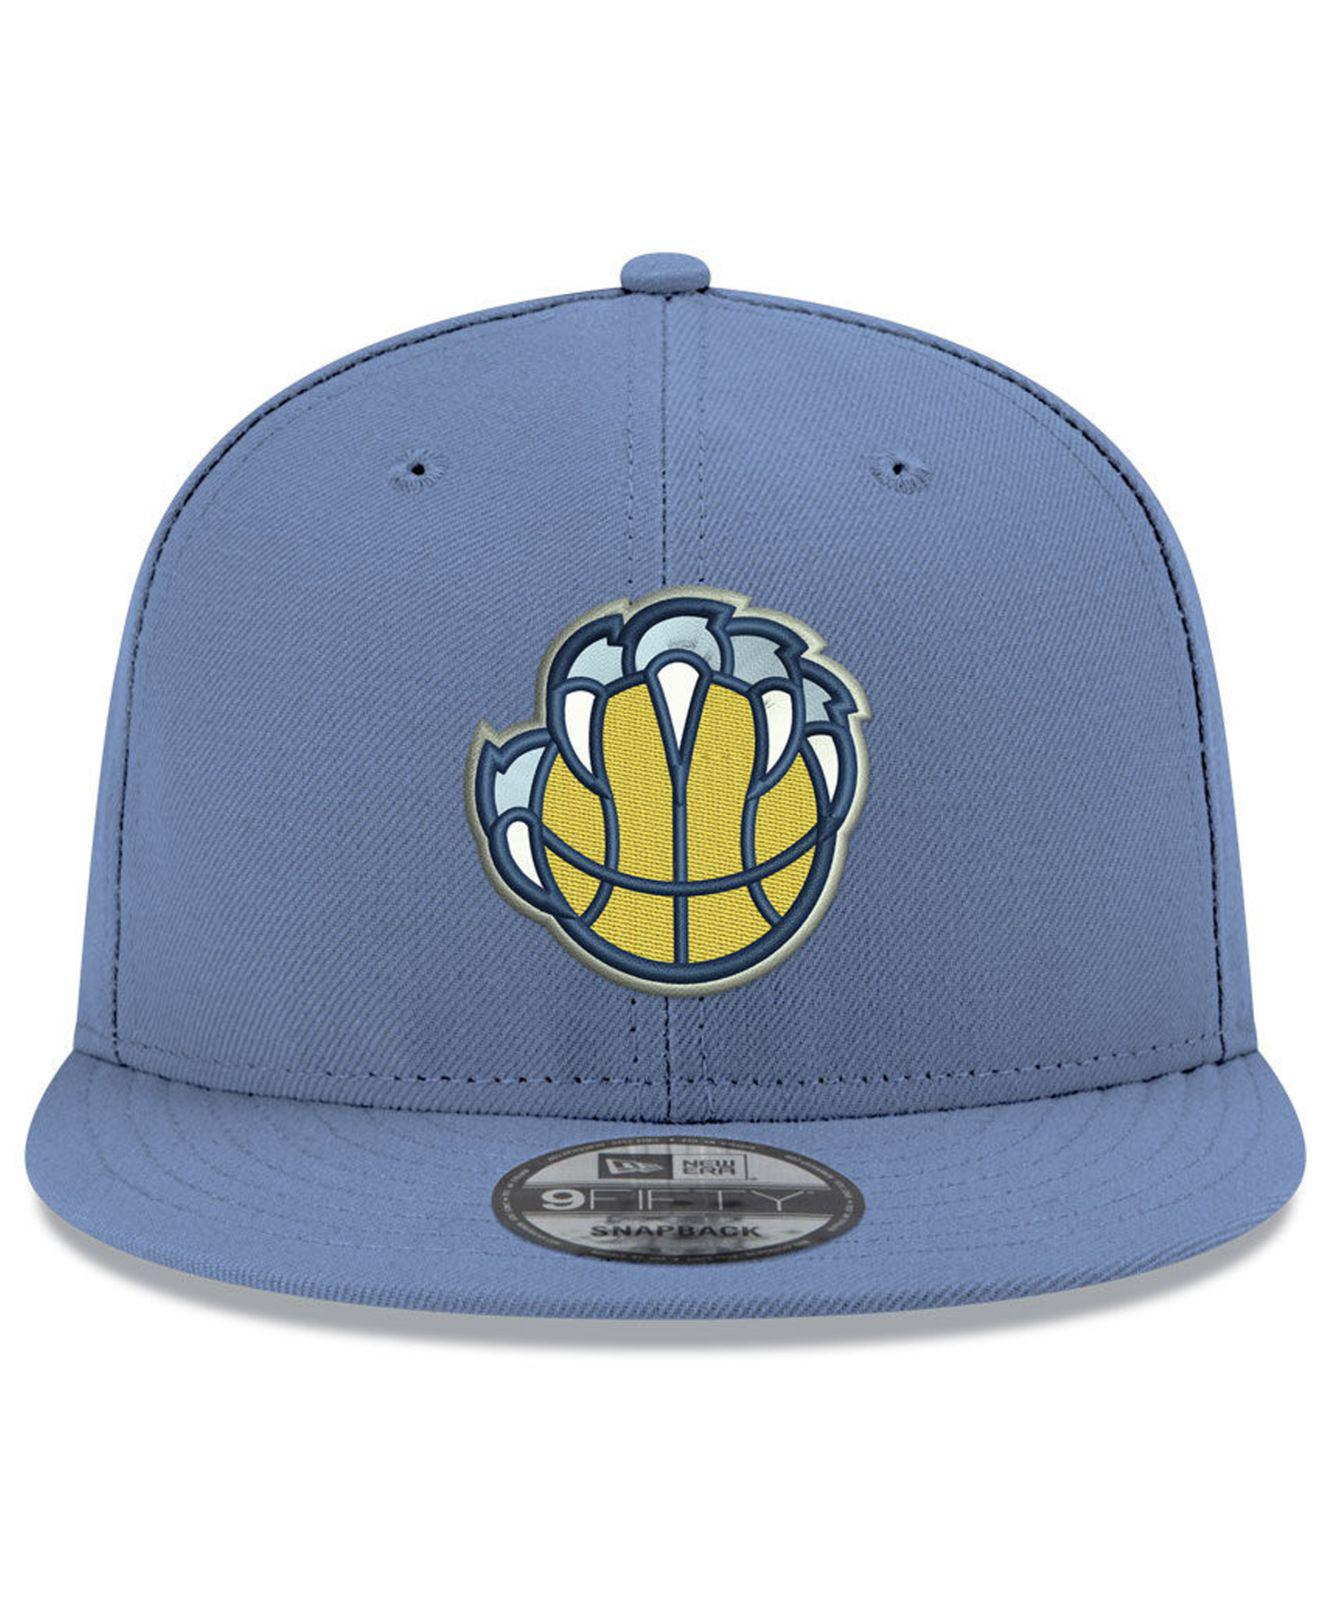 reputable site 1614b 66ad2 Lyst - KTZ Memphis Grizzlies Basic 9fifty Snapback Cap 2018 in Blue for Men